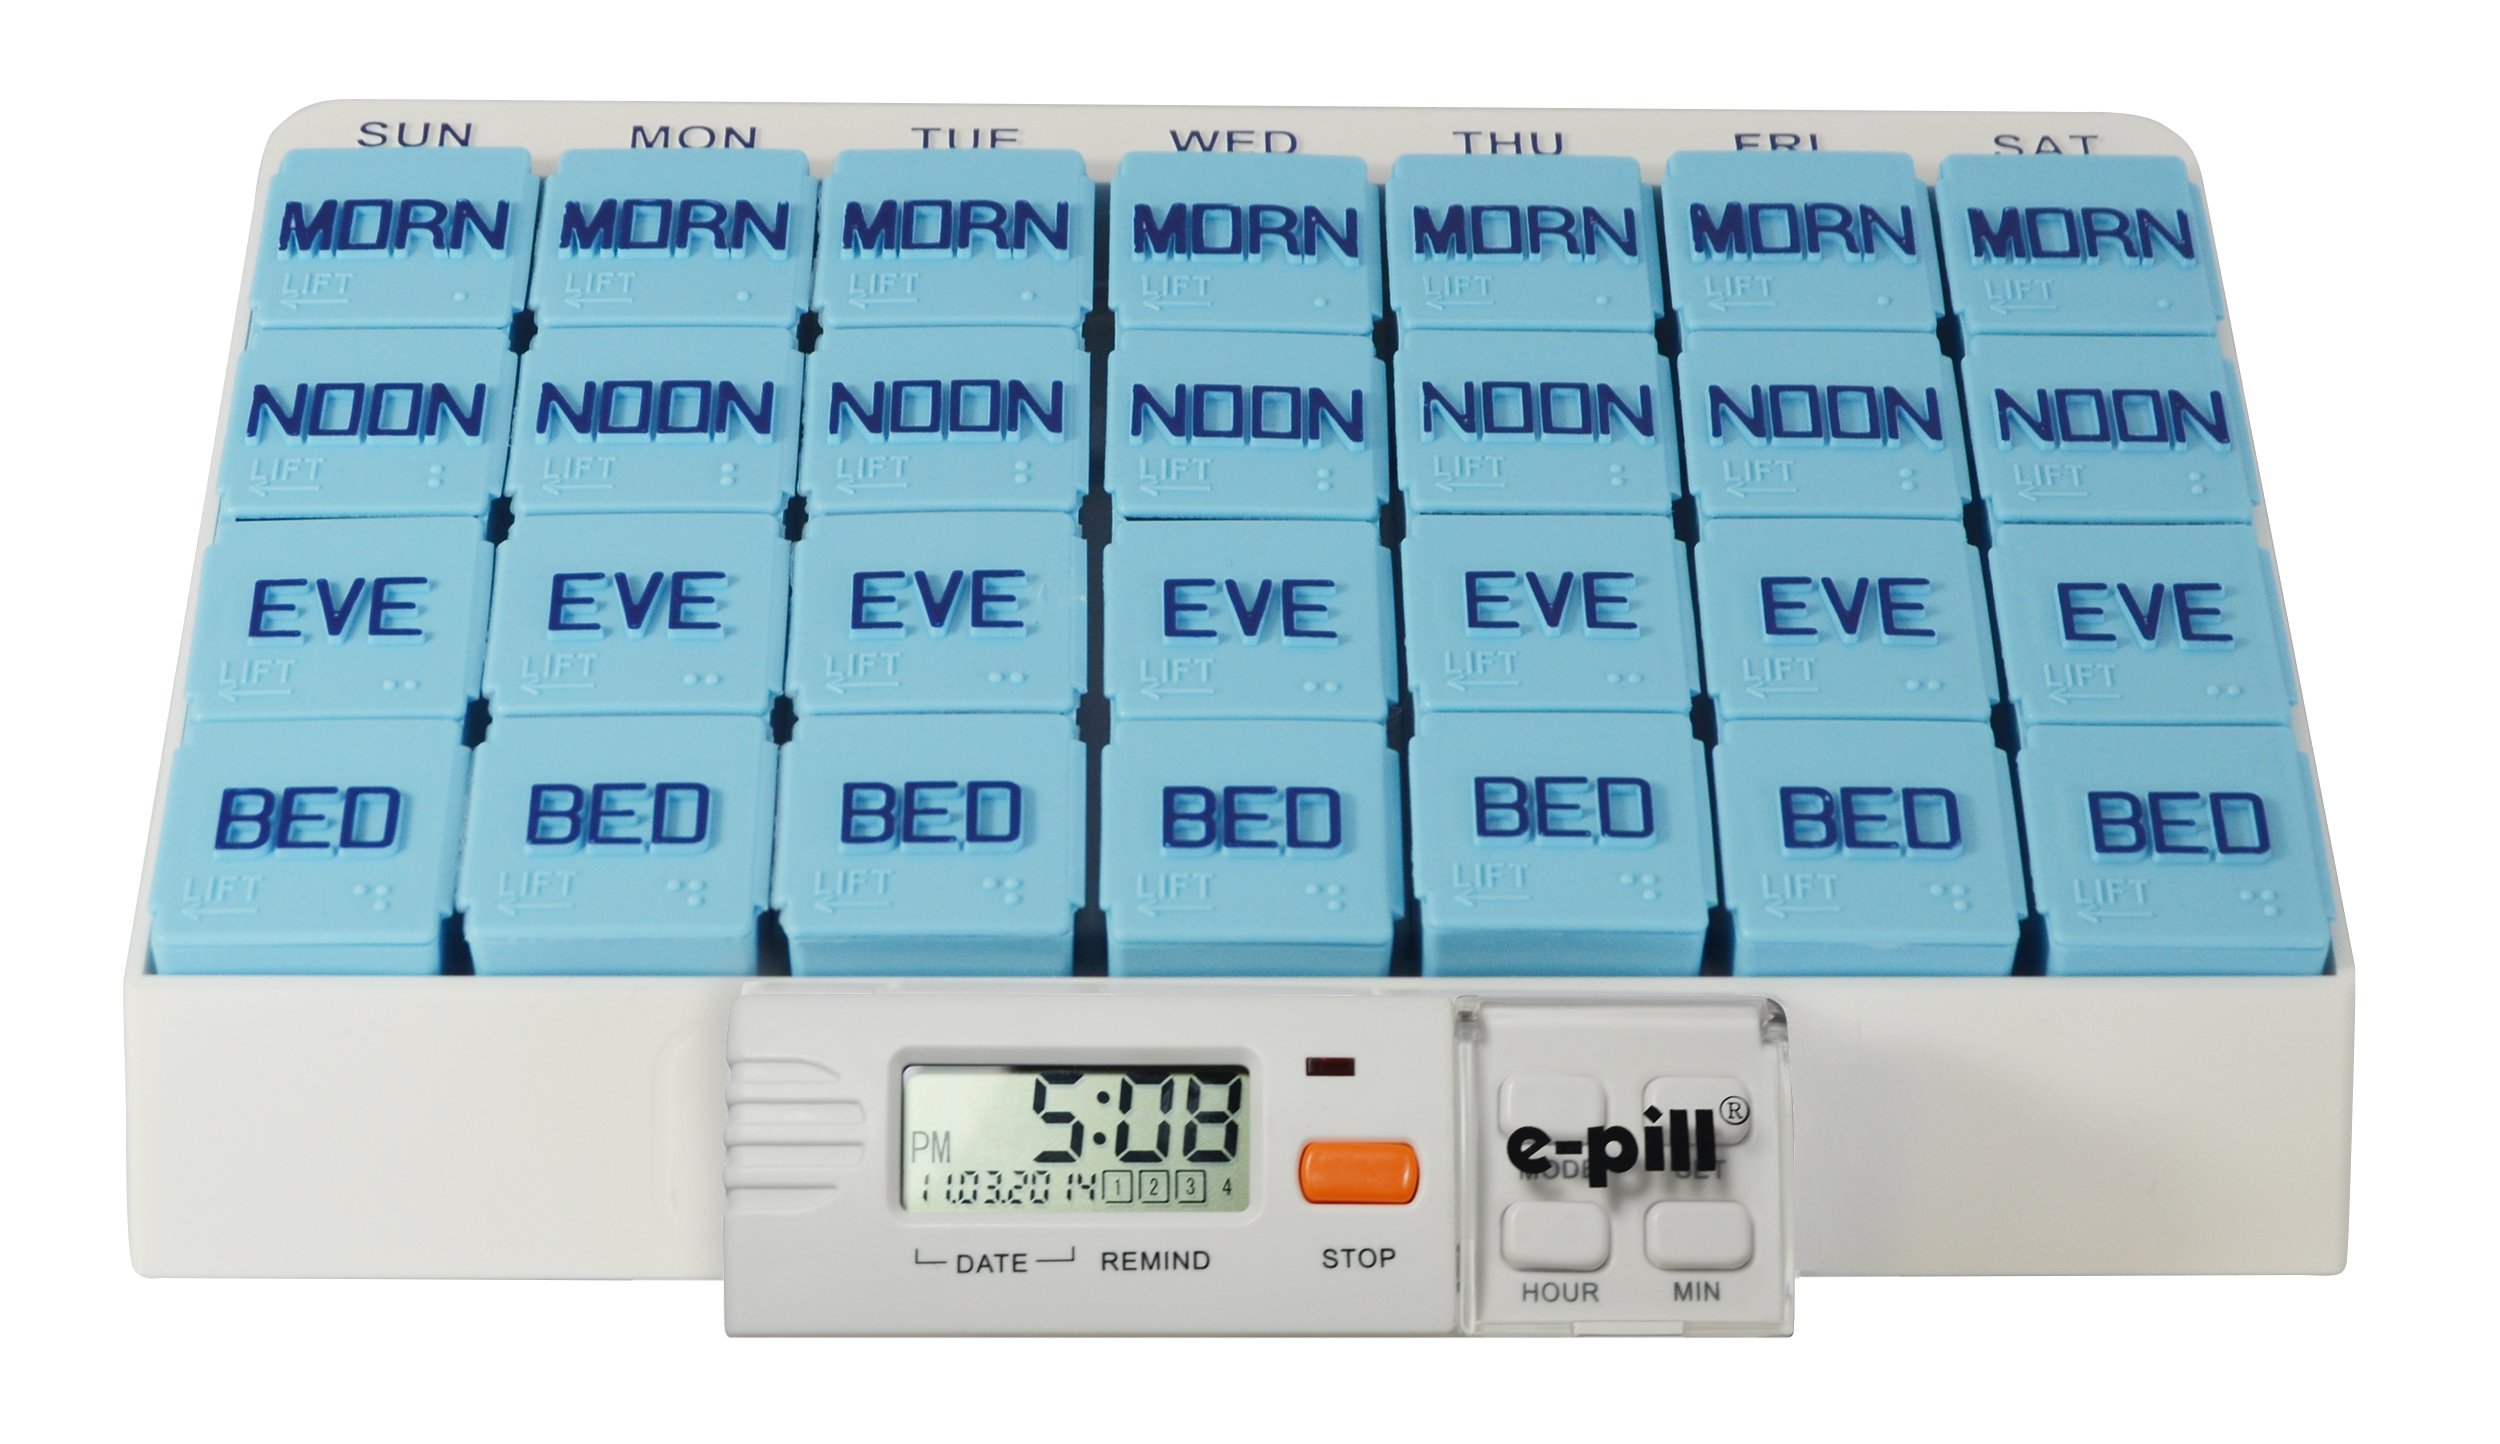 e-Pill | MedGlider Home, Up to 4 Alarms with 4 Compartment x 7 Day Pill Organizer, Large Capacity by e-pill Medication Reminders